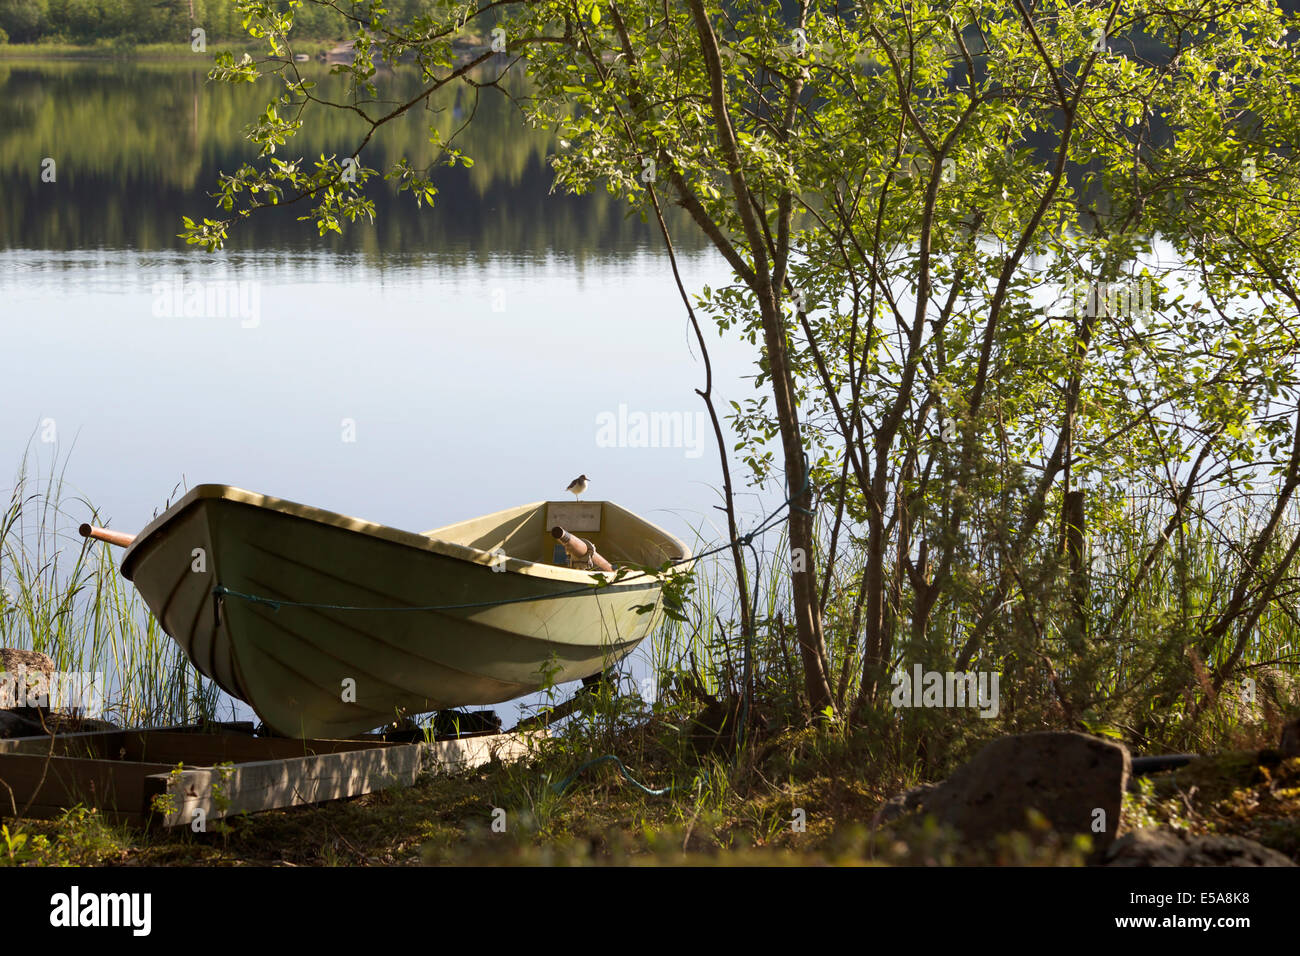 Rowing boat at the lakeside with a bird on its tailboard in summer in Finland - Stock Image